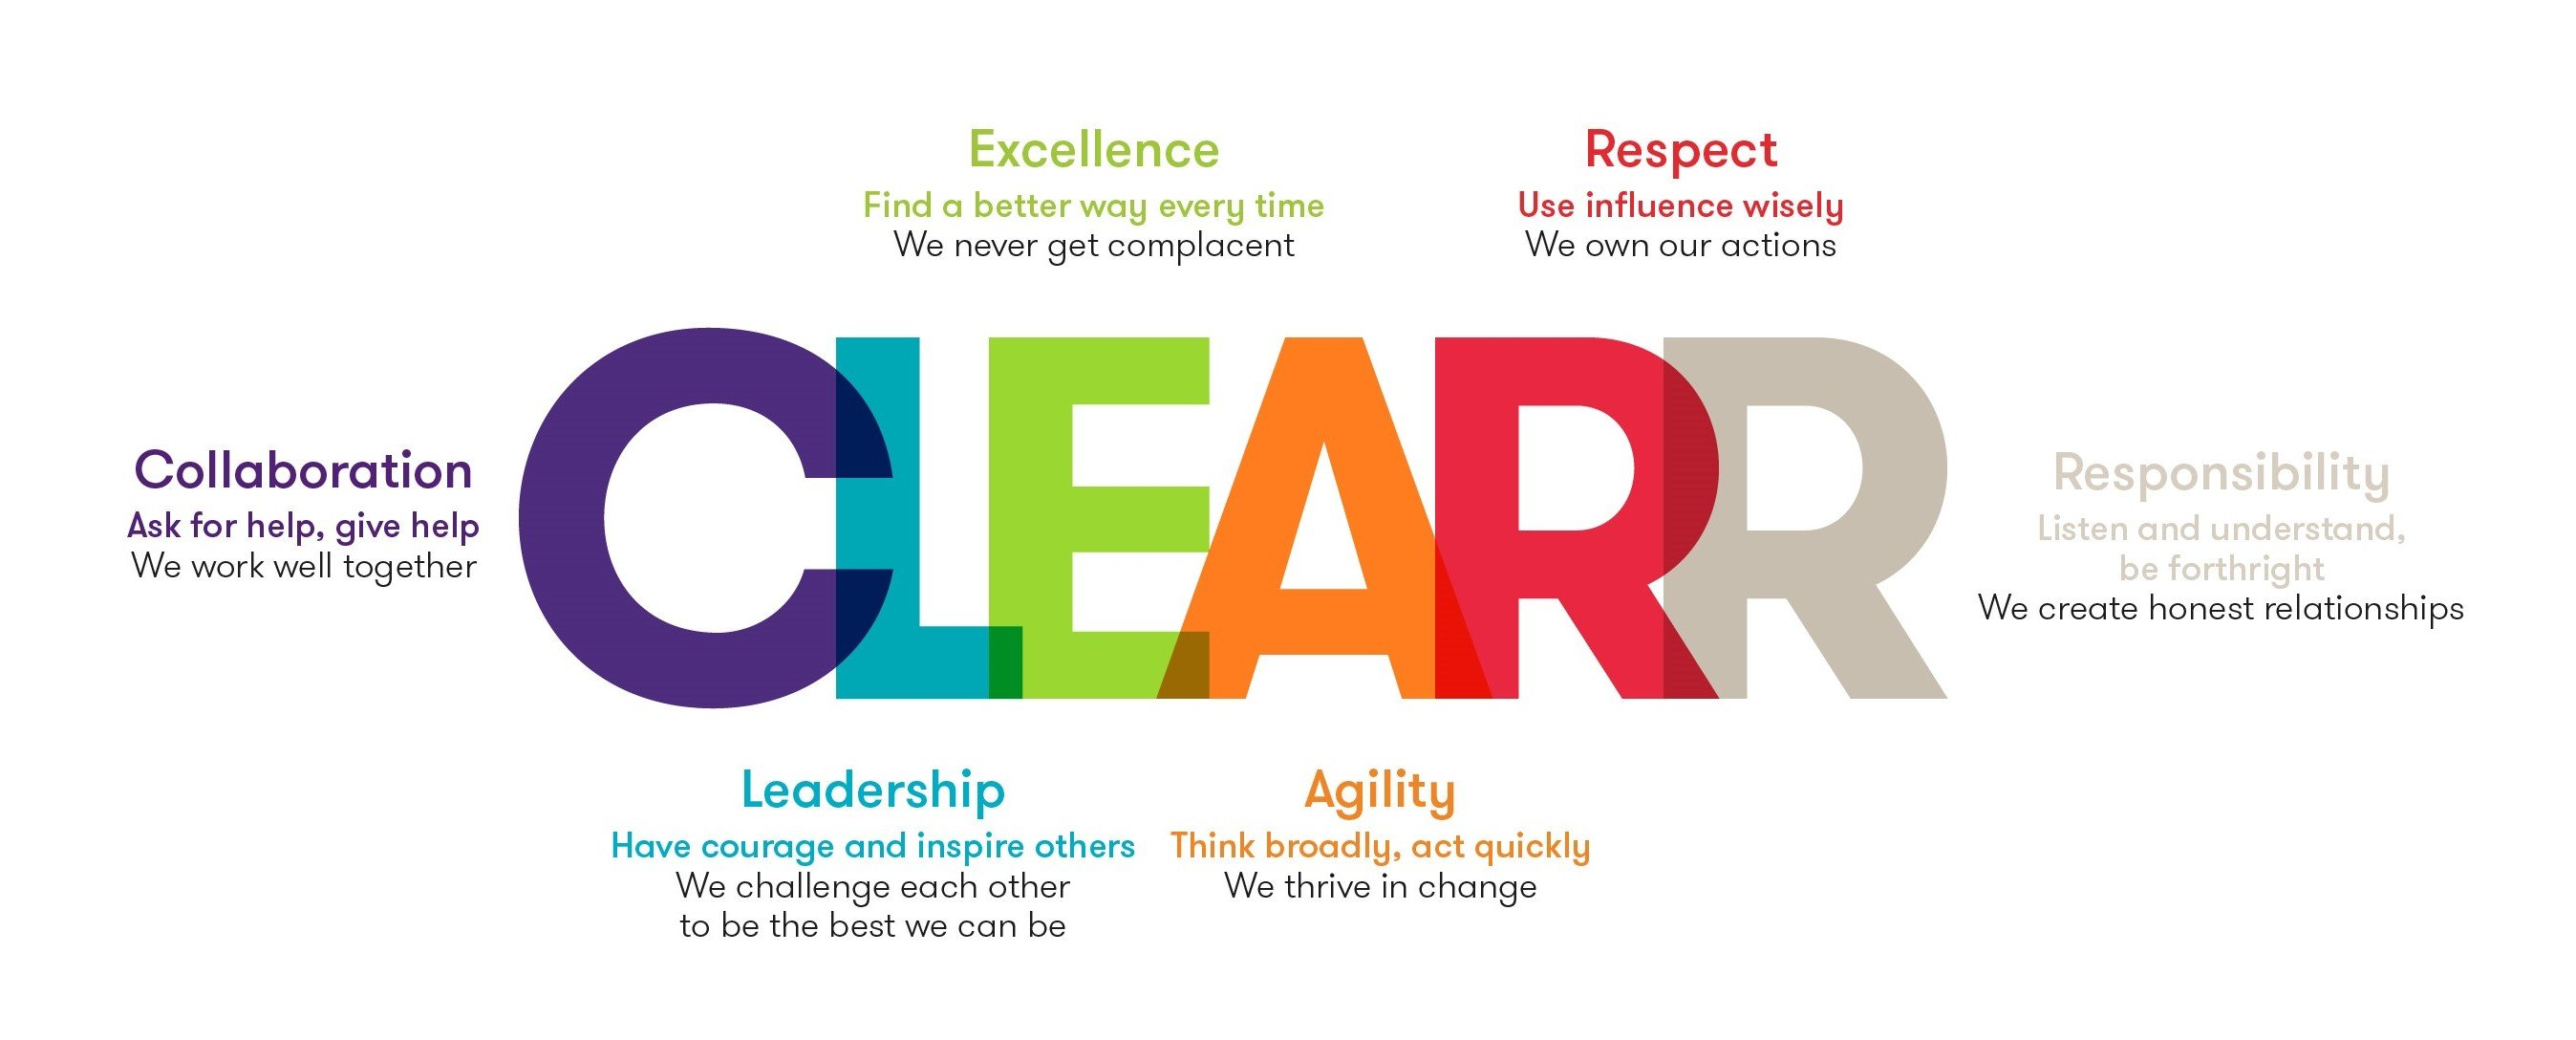 Grant Thornton Luxembourg CLEARR values